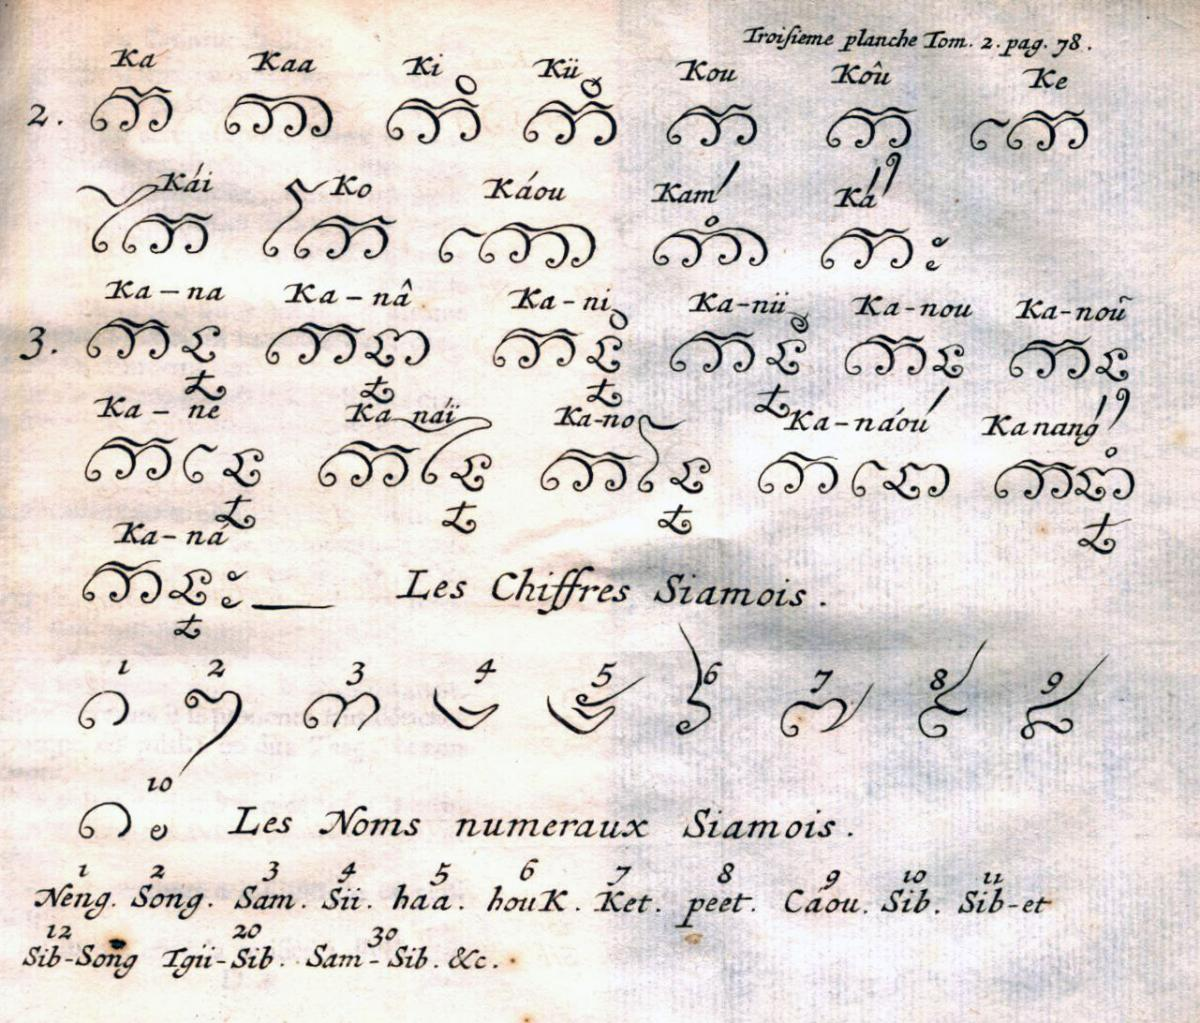 The Bali alphabets and Siamese numerals.